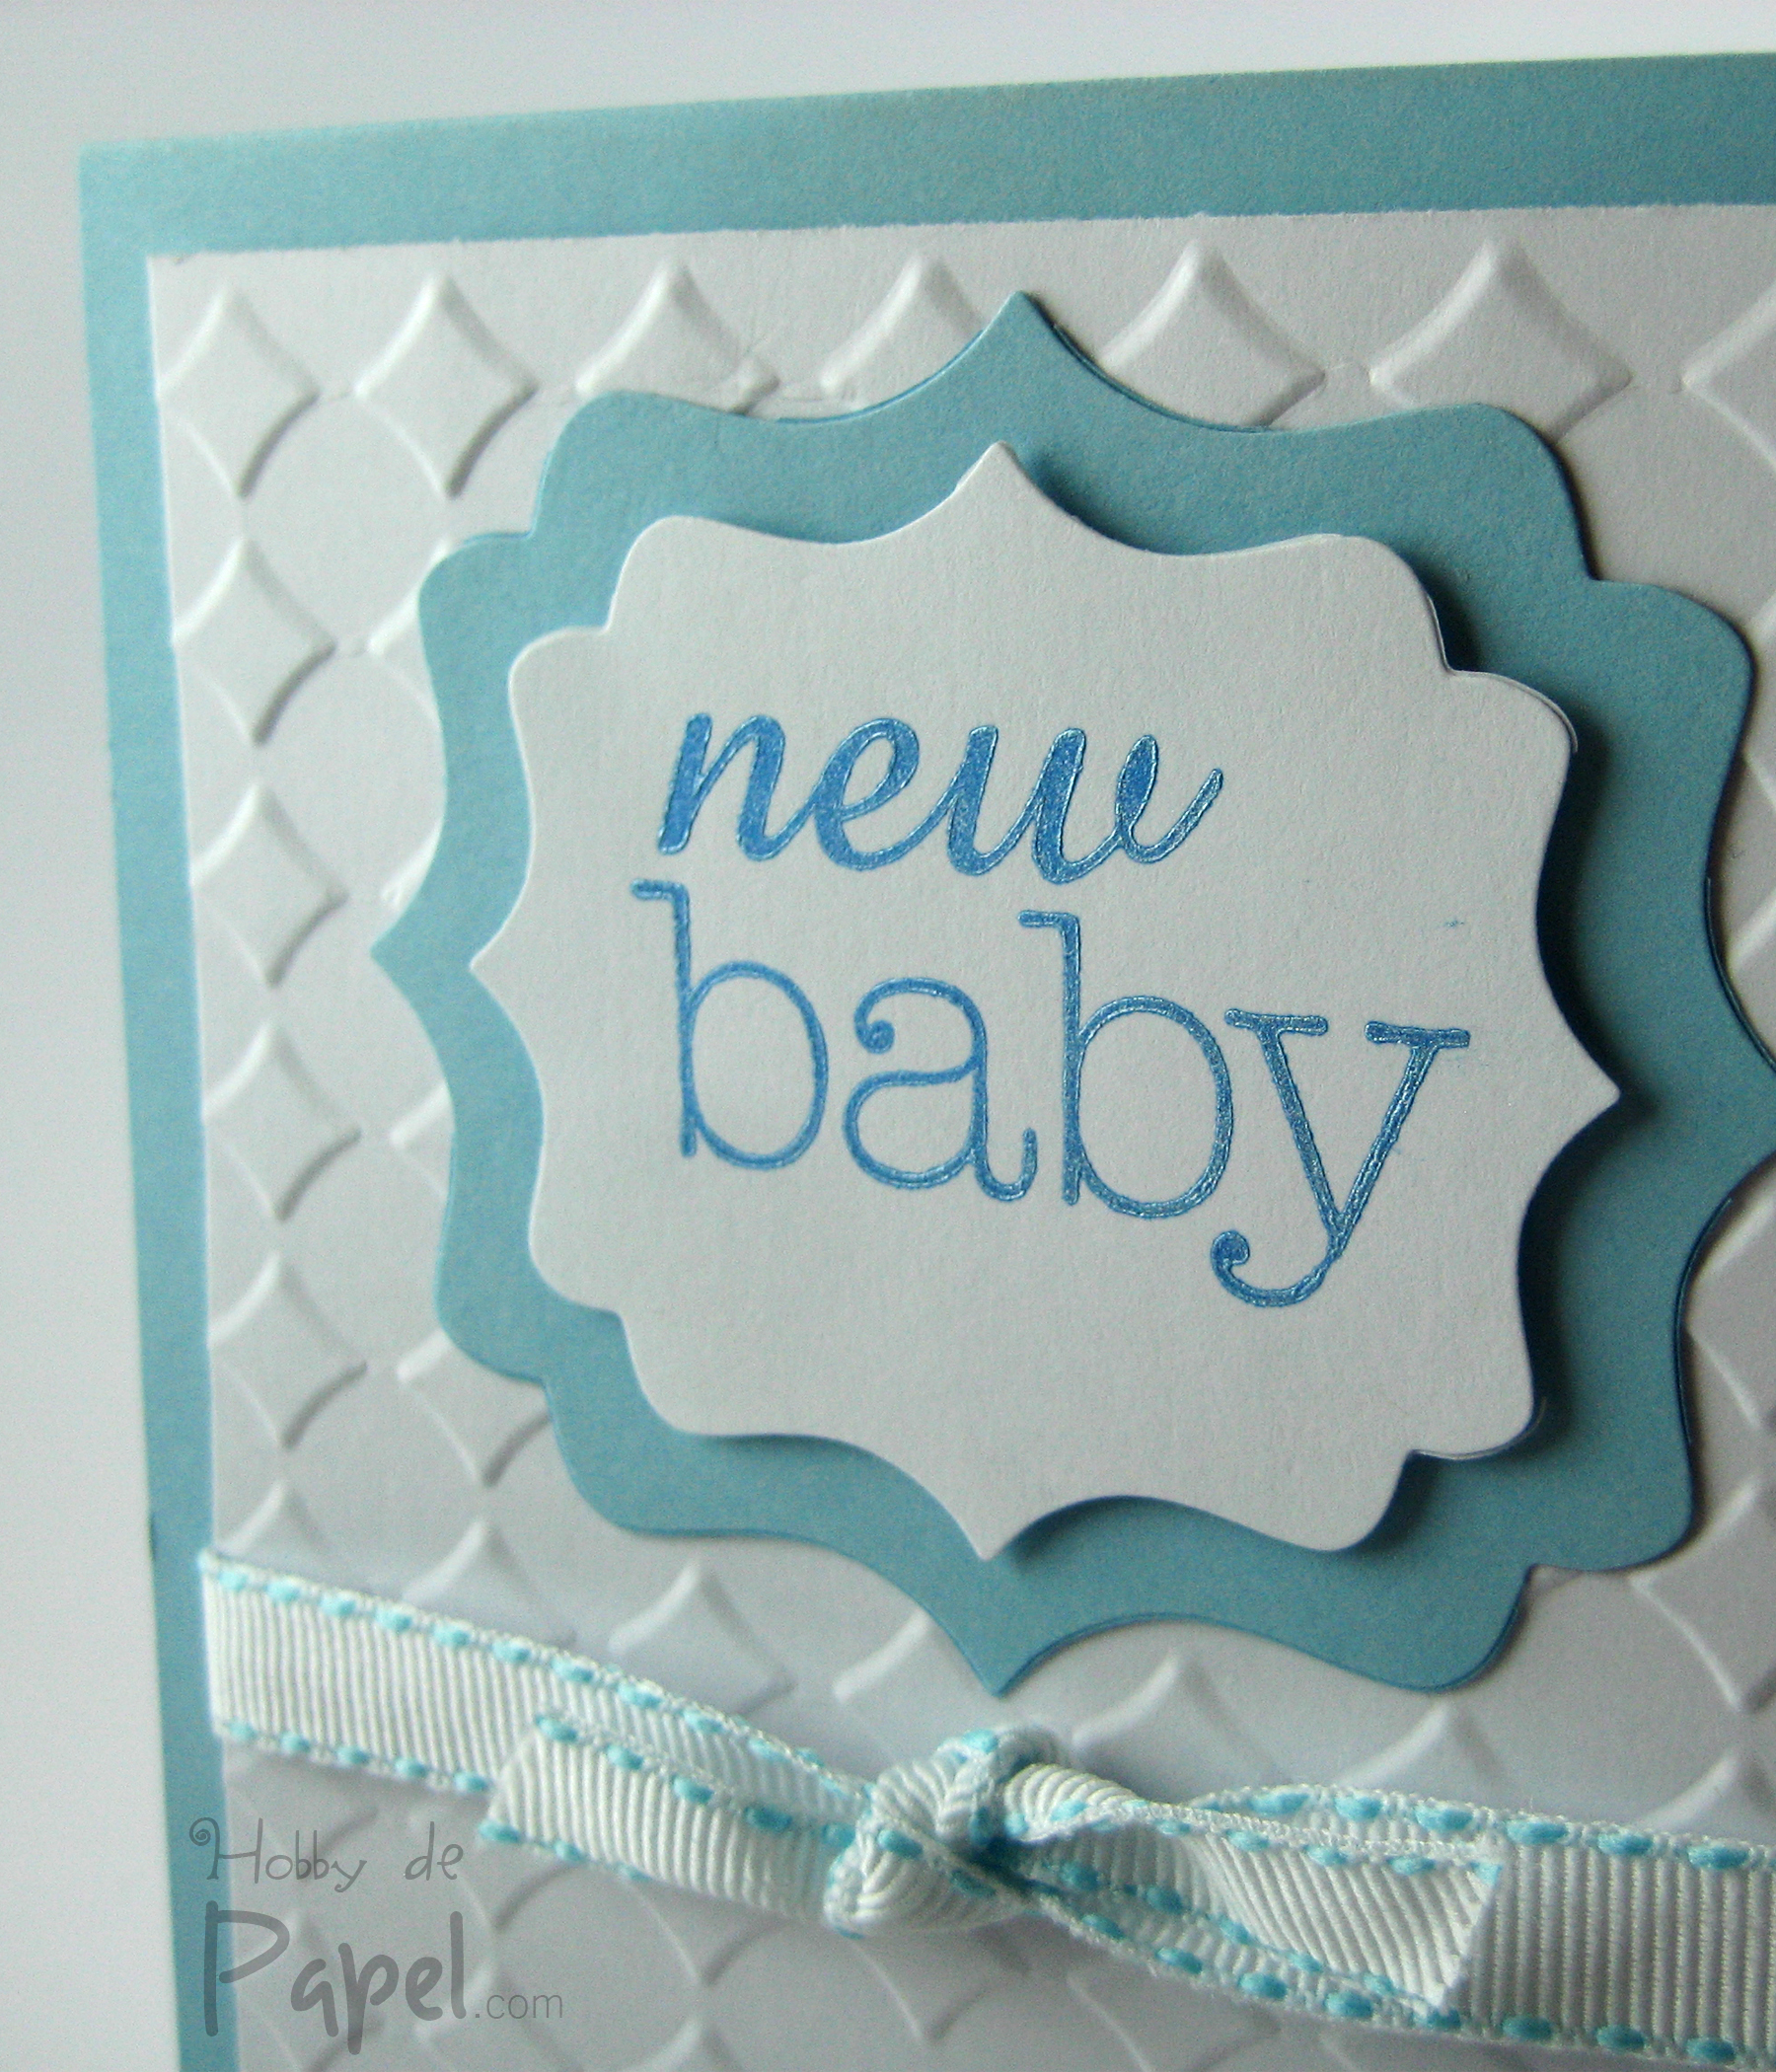 Invitaciones Baby Shower Hobby De Papel